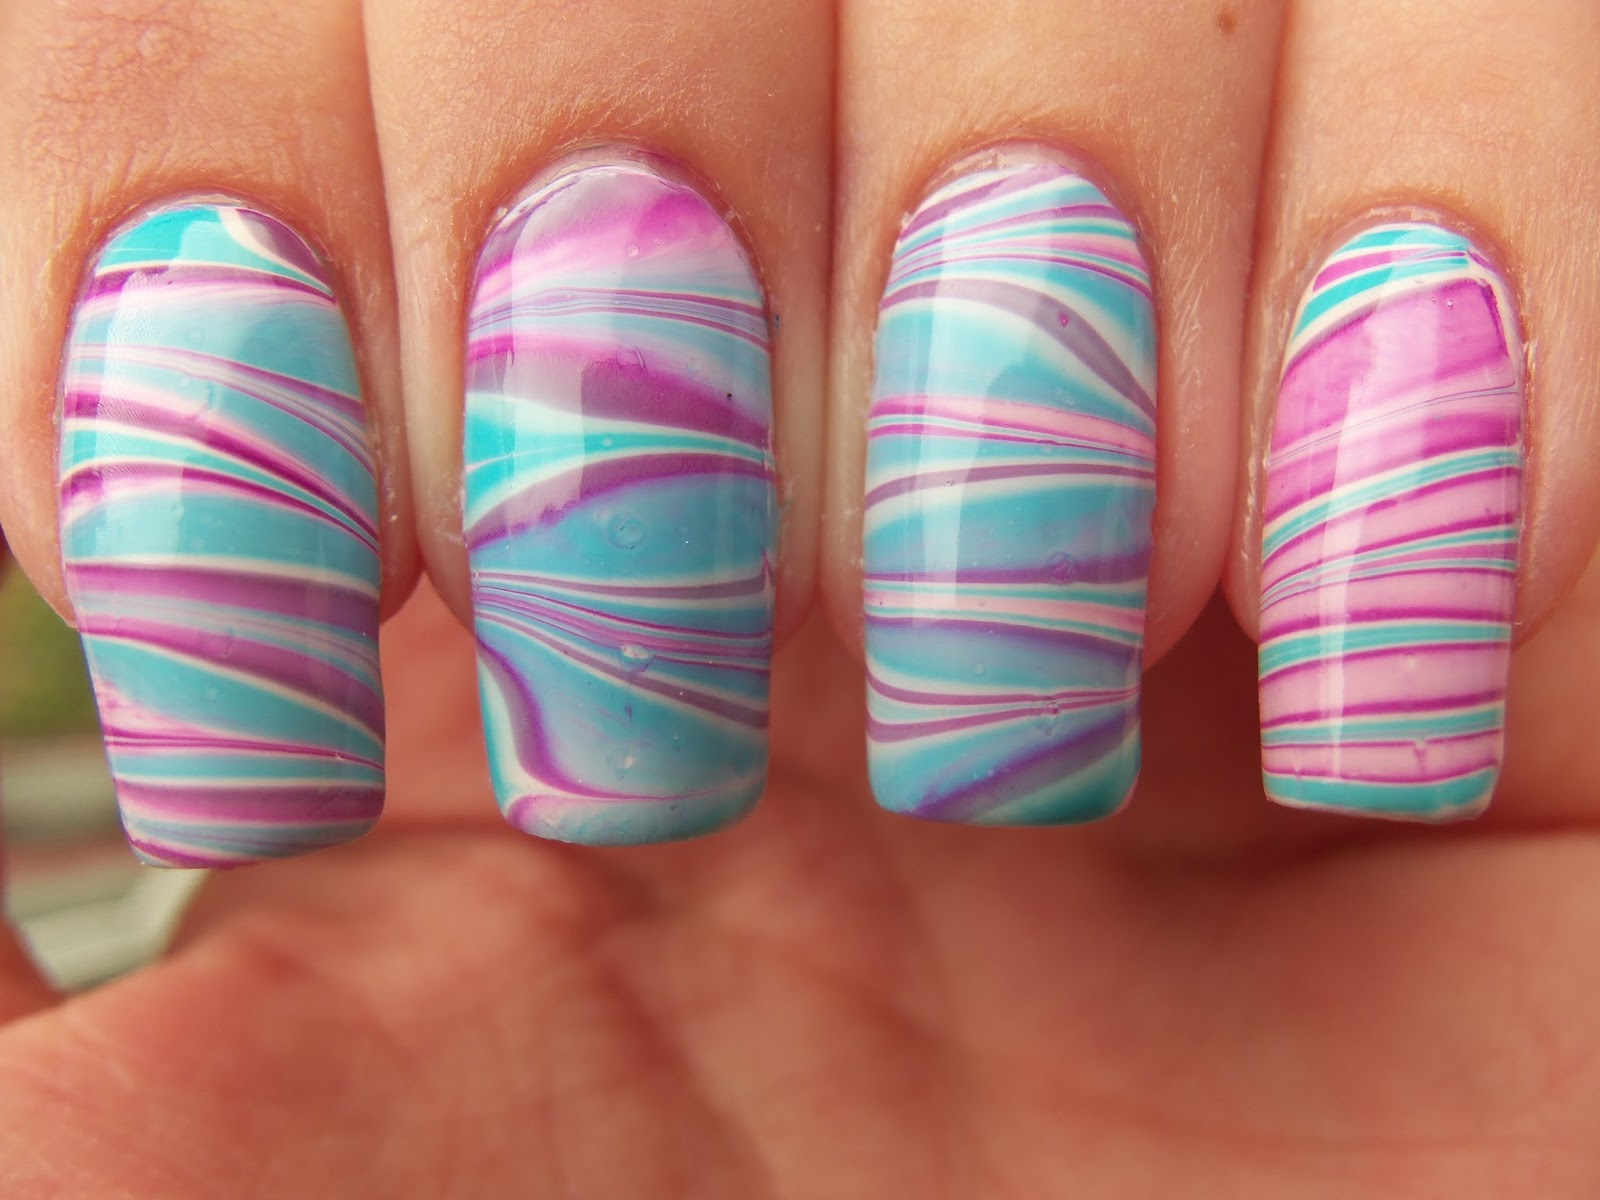 http://megsmanicures.blogspot.com/2014/09/pinks-and-blues-water-marble.html